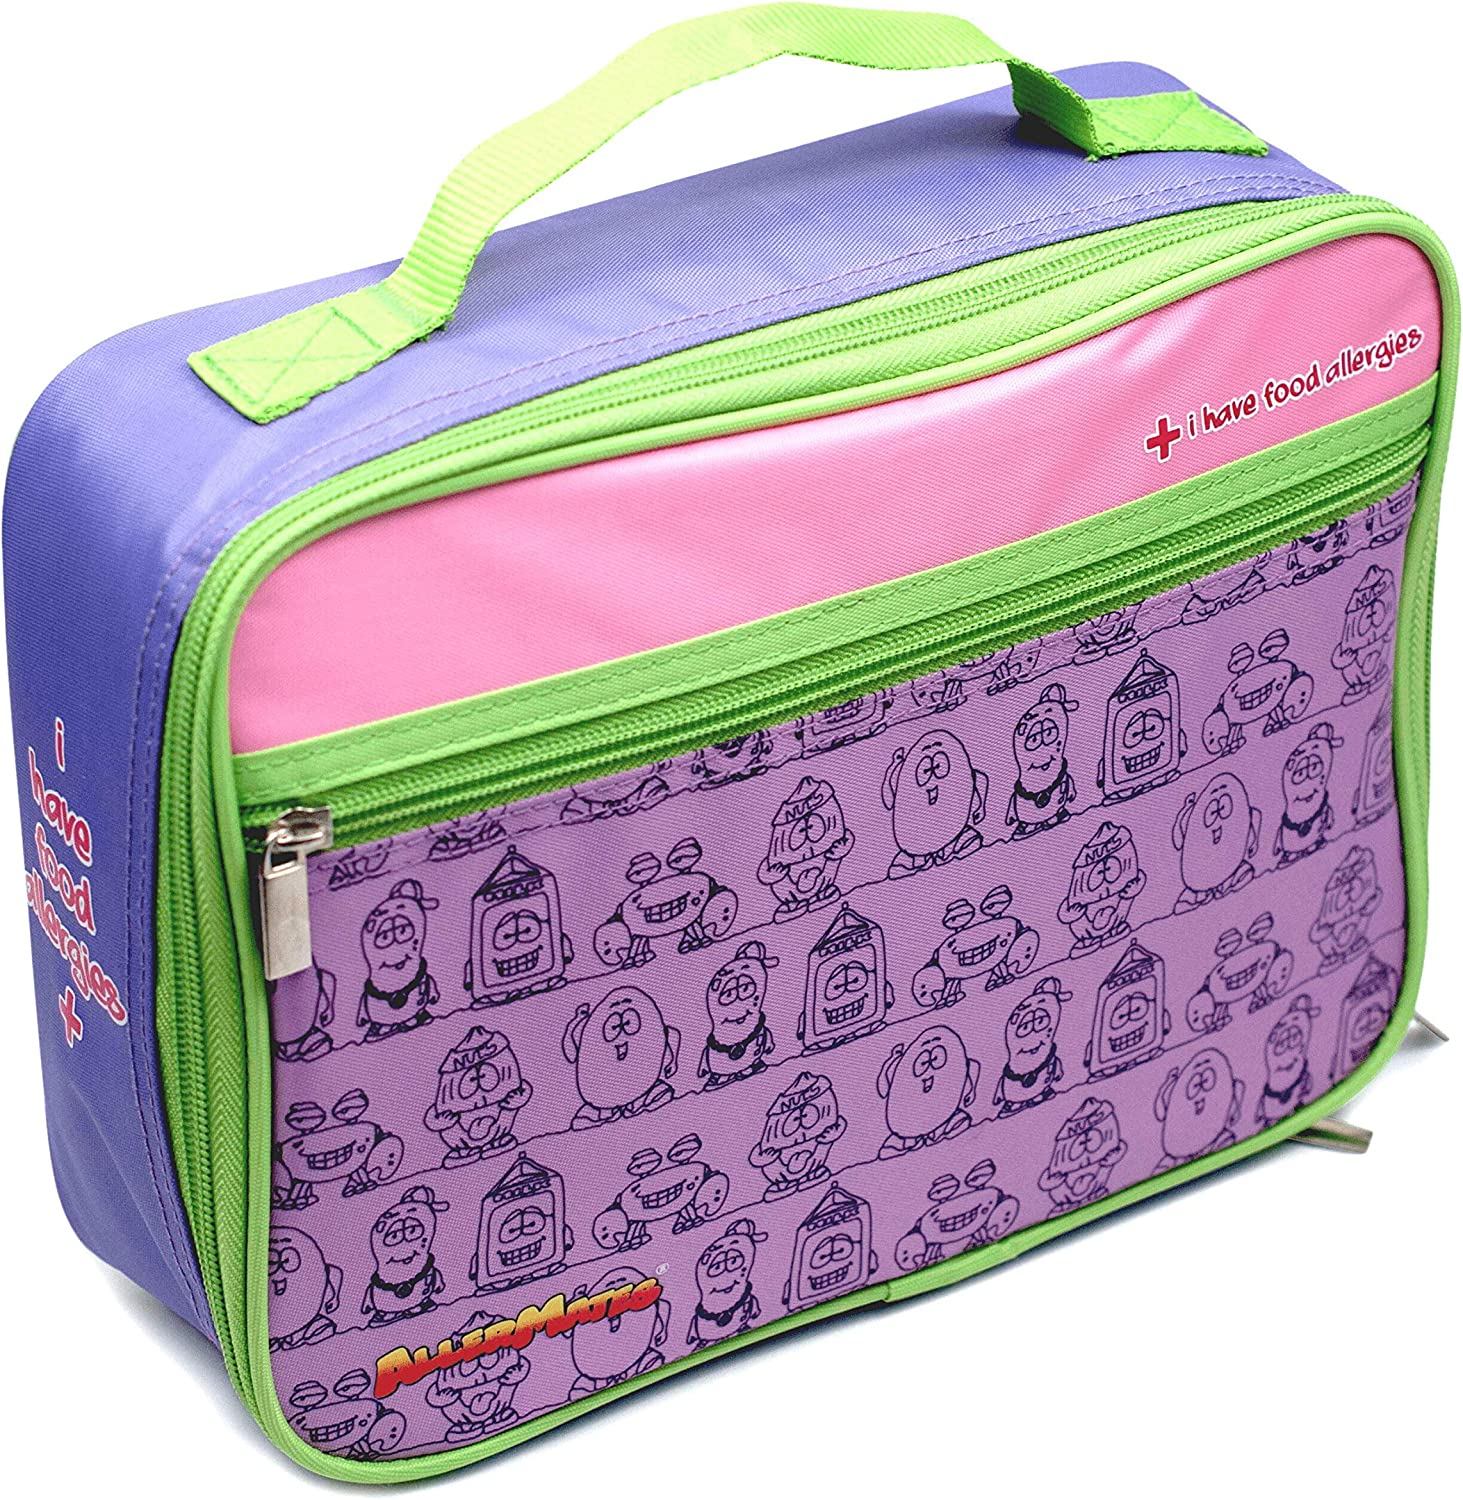 AllerMates I Have Food Allergies Fun Characters Eco Friendly Insulated Children's Food Safety Lunch Box - Purple